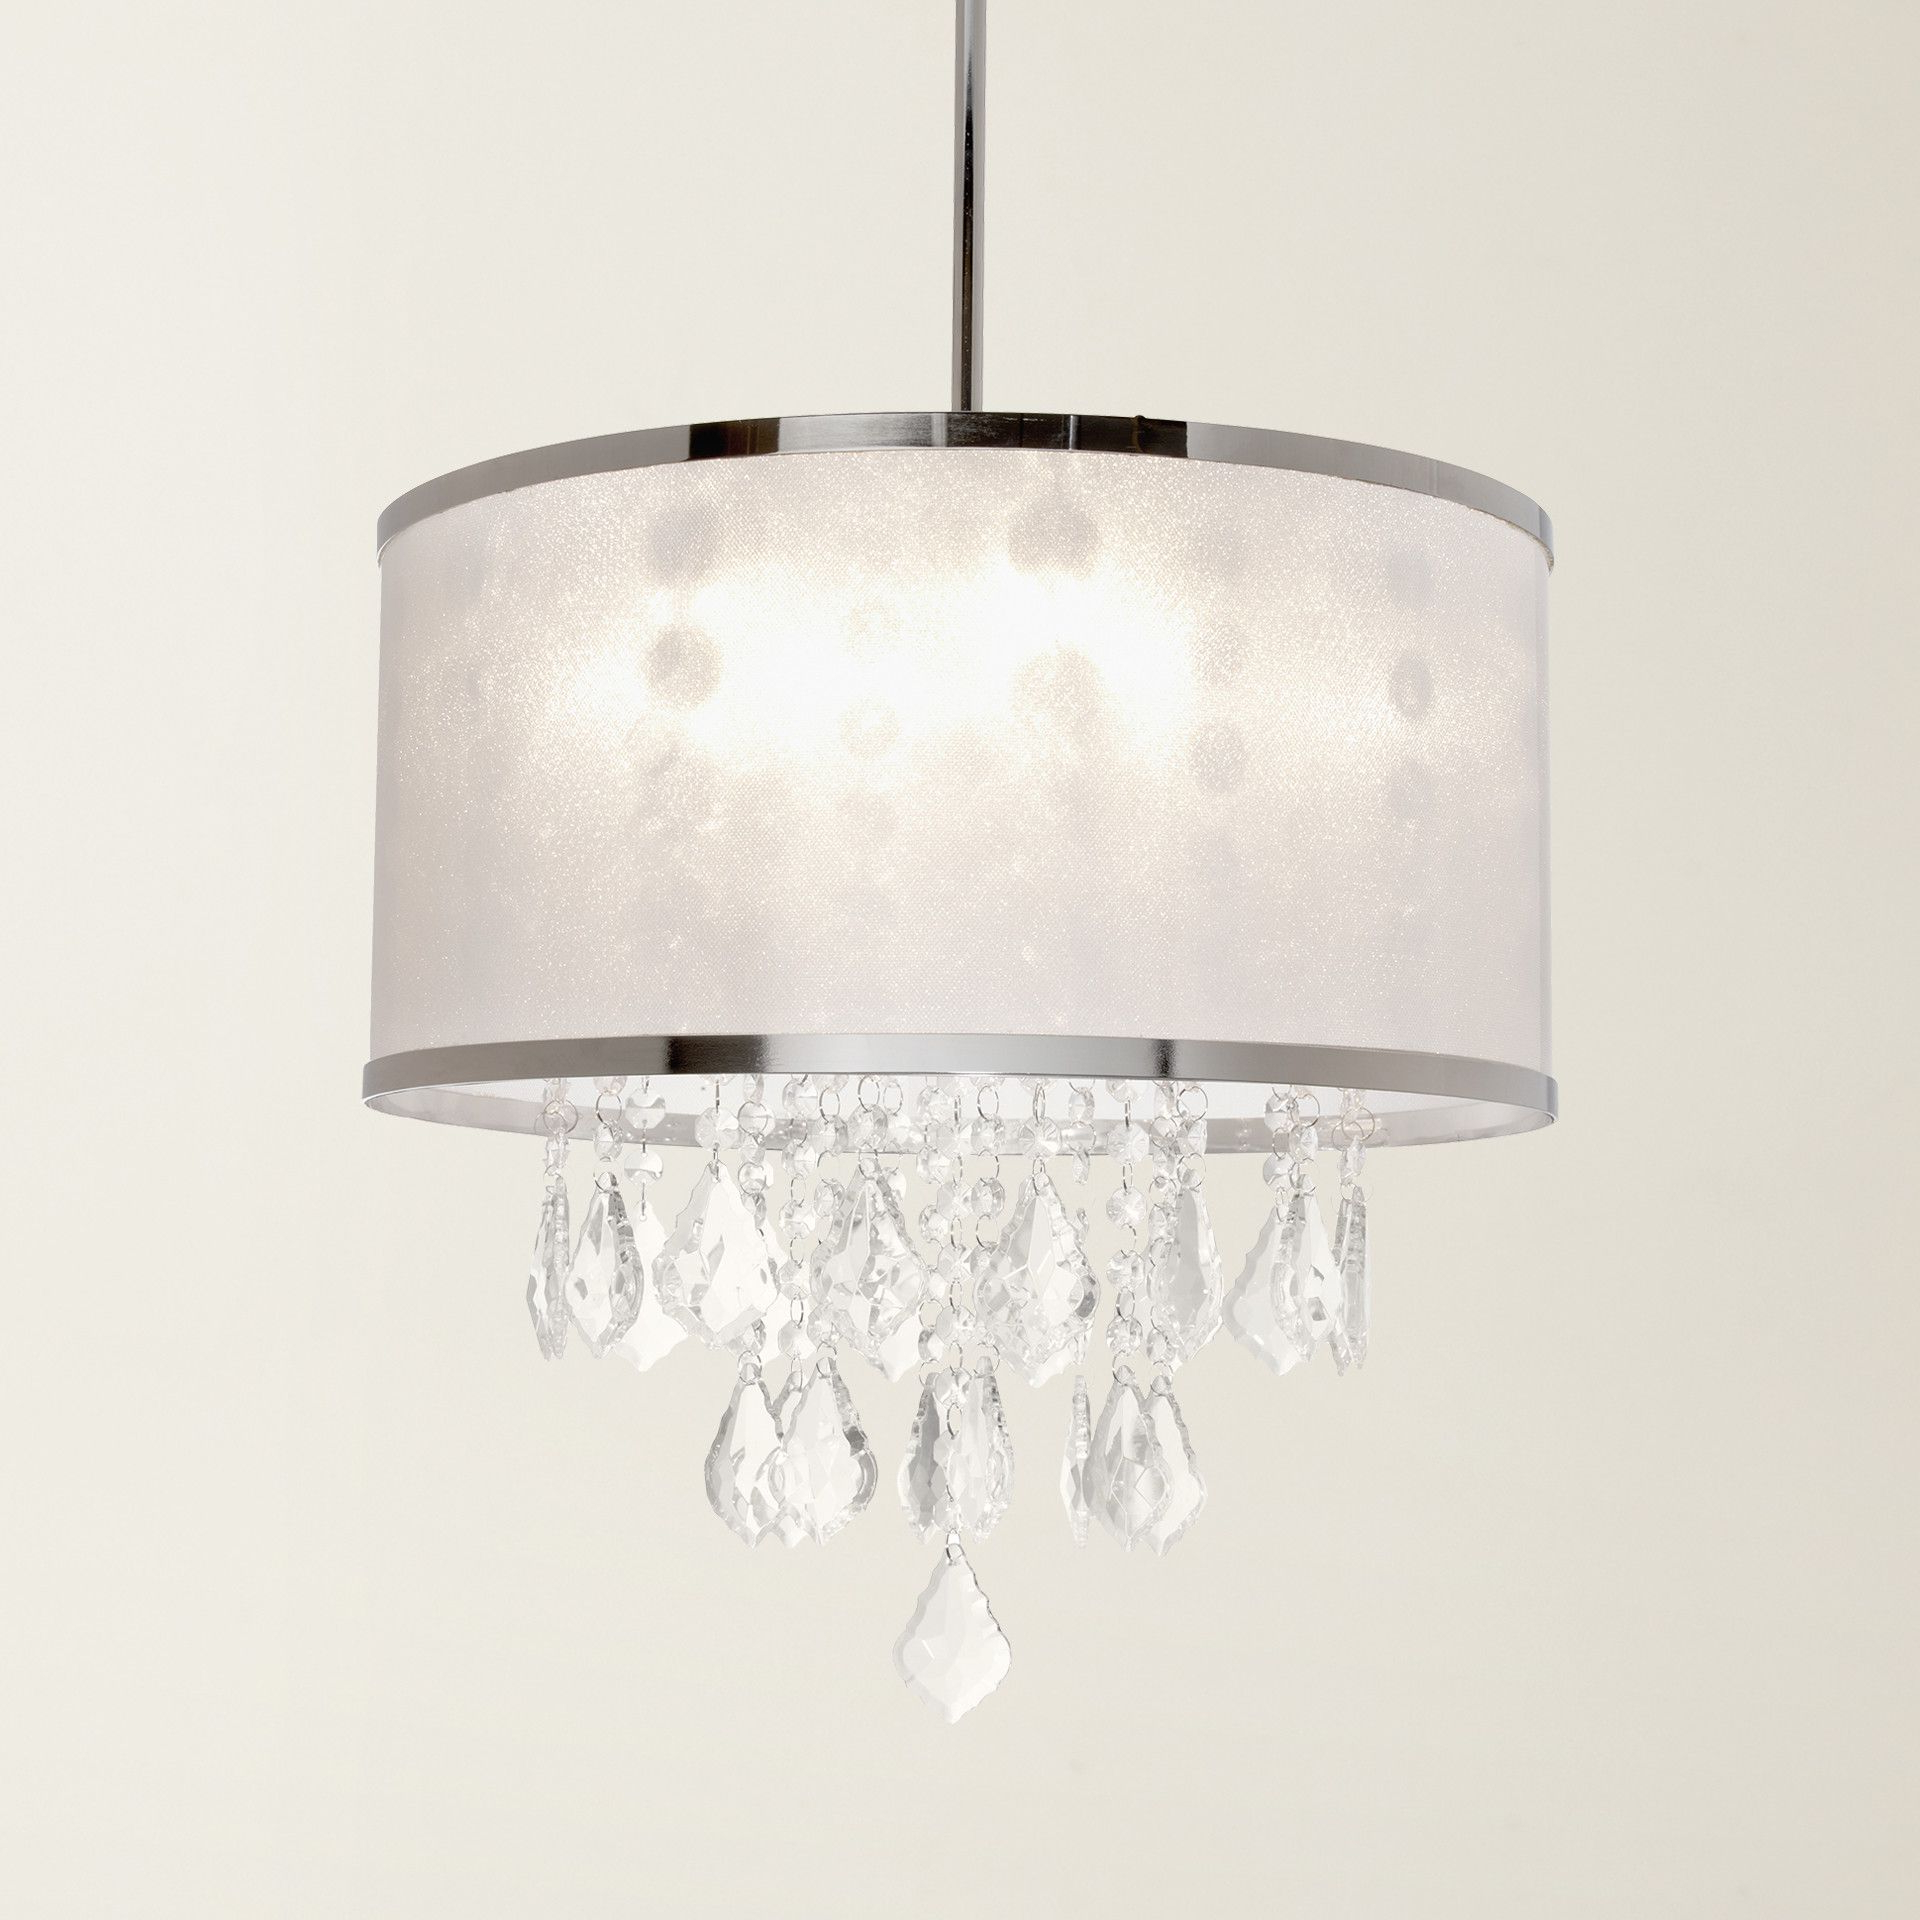 Well Liked Lindsey 4 Light Drum Chandeliers Intended For House Of Hampton® Leibowitz 4 Light Drum Chandelier (View 4 of 25)